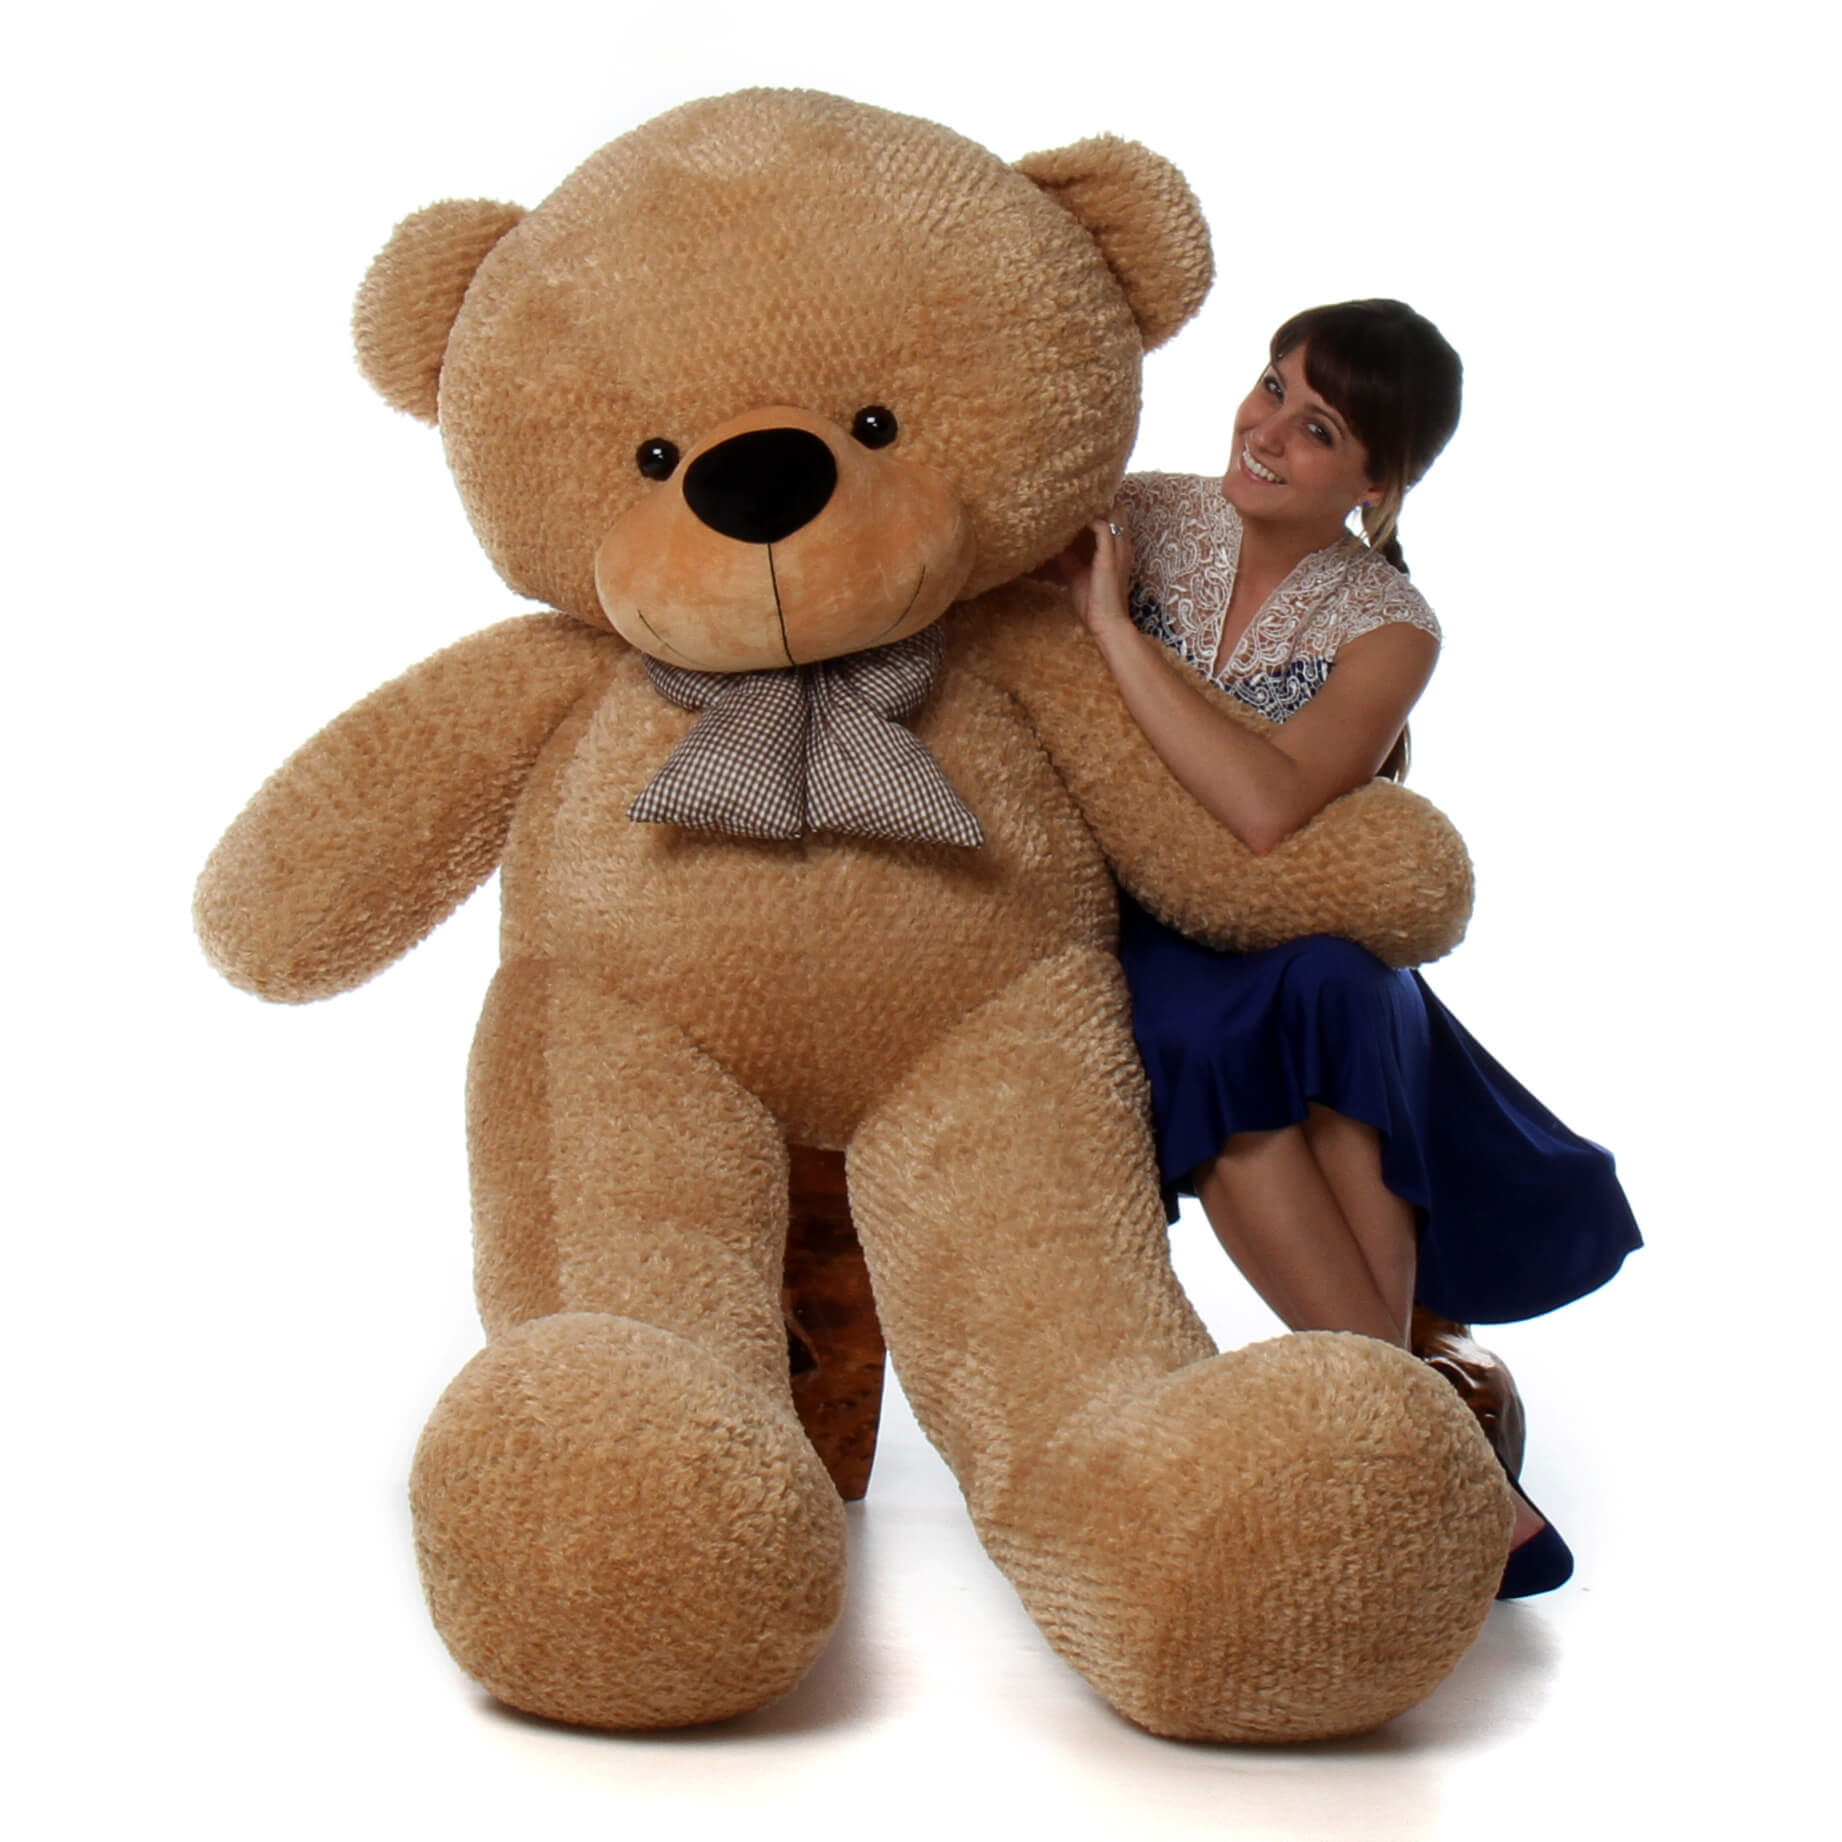 6ft-life-size-amazing-brown-teddy-bear-shaggy-cuddles-a-.jpg